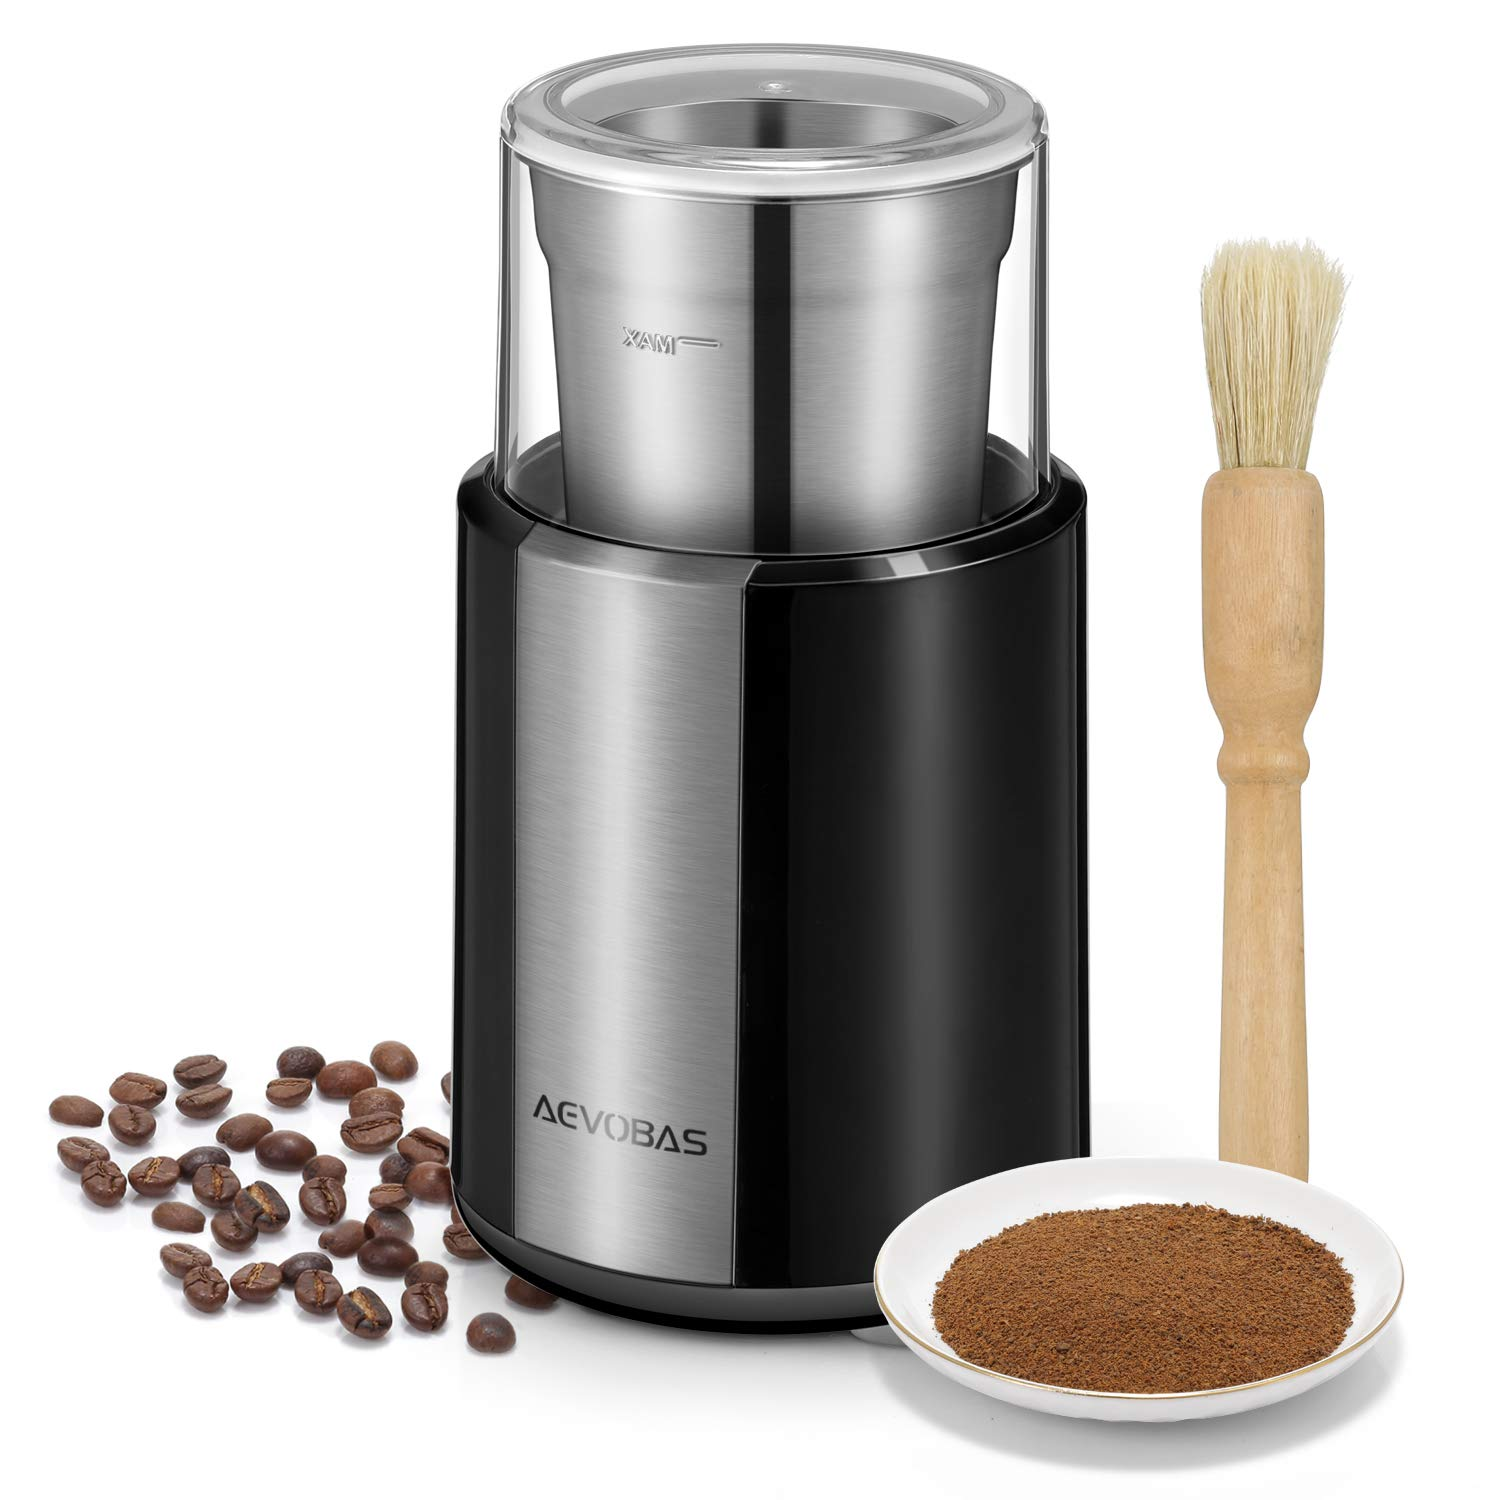 AEVOBAS Electric Coffee Grinder Coffee Bean Spice Nut Grinding Machine Stainless Steel Blade Multifunction Household Mill with A Coffee Grinder Cleaning Brush by AEVOBAS